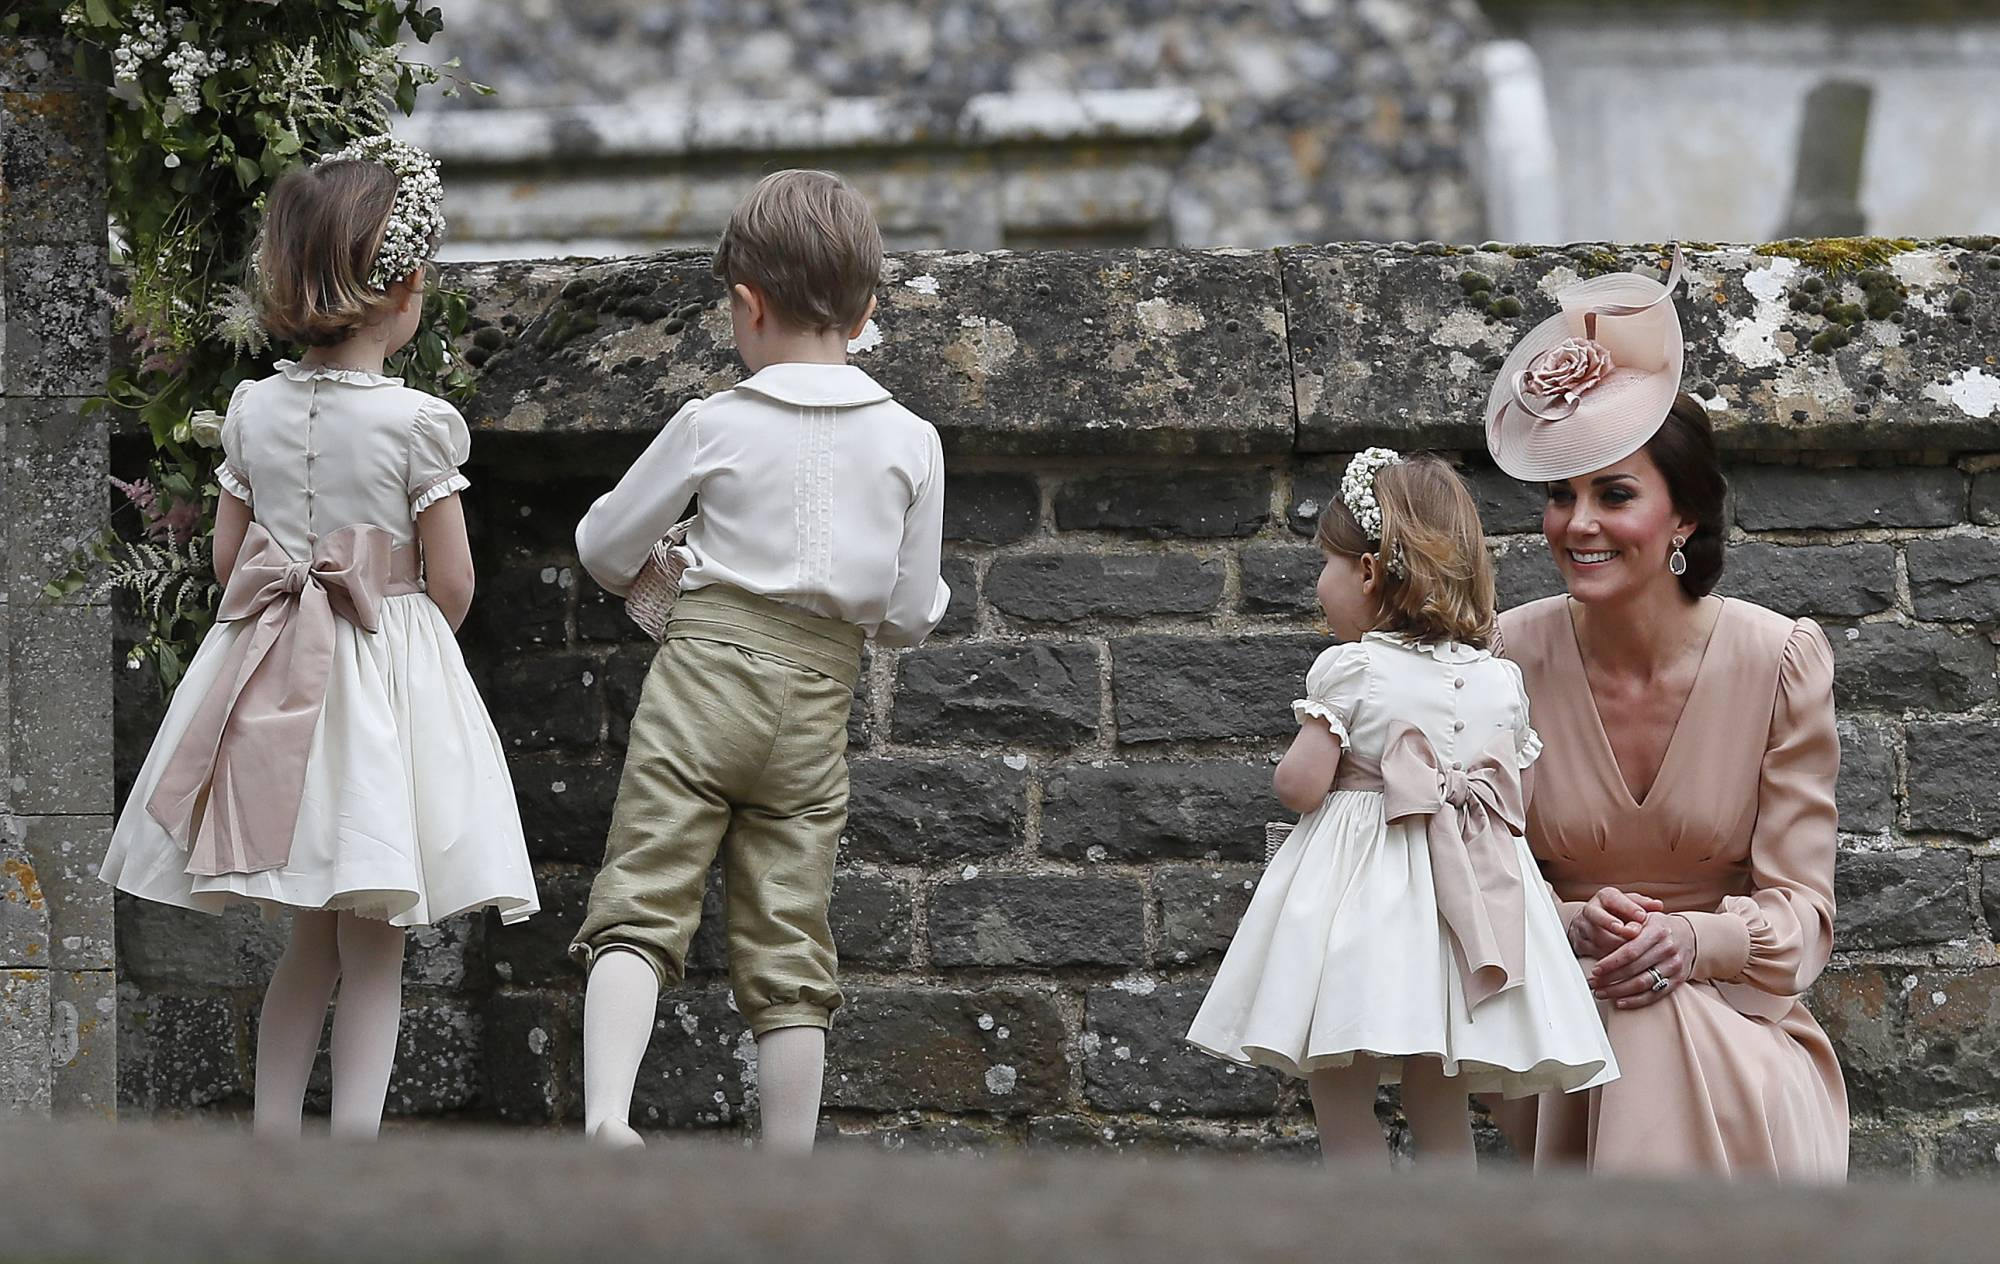 Kate, Duchess of Cambridge, right, smiles as she kneels next to her children Princess Charlotte, second right, and Prince George, who were flower boys and girls at the wedding of Pippa Middleton and James Matthews at St Mark's Church in Englefield, England Saturday, May 20, 2017. Middleton, the sister of Kate, Duchess of Cambridge married hedge fund manager James Matthews in a ceremony Saturday where her niece and nephew Prince George and Princess Charlotte was in the wedding party, along with sister Kate and princes Harry and William. (AP Photo/Kirsty Wigglesworth, Pool)